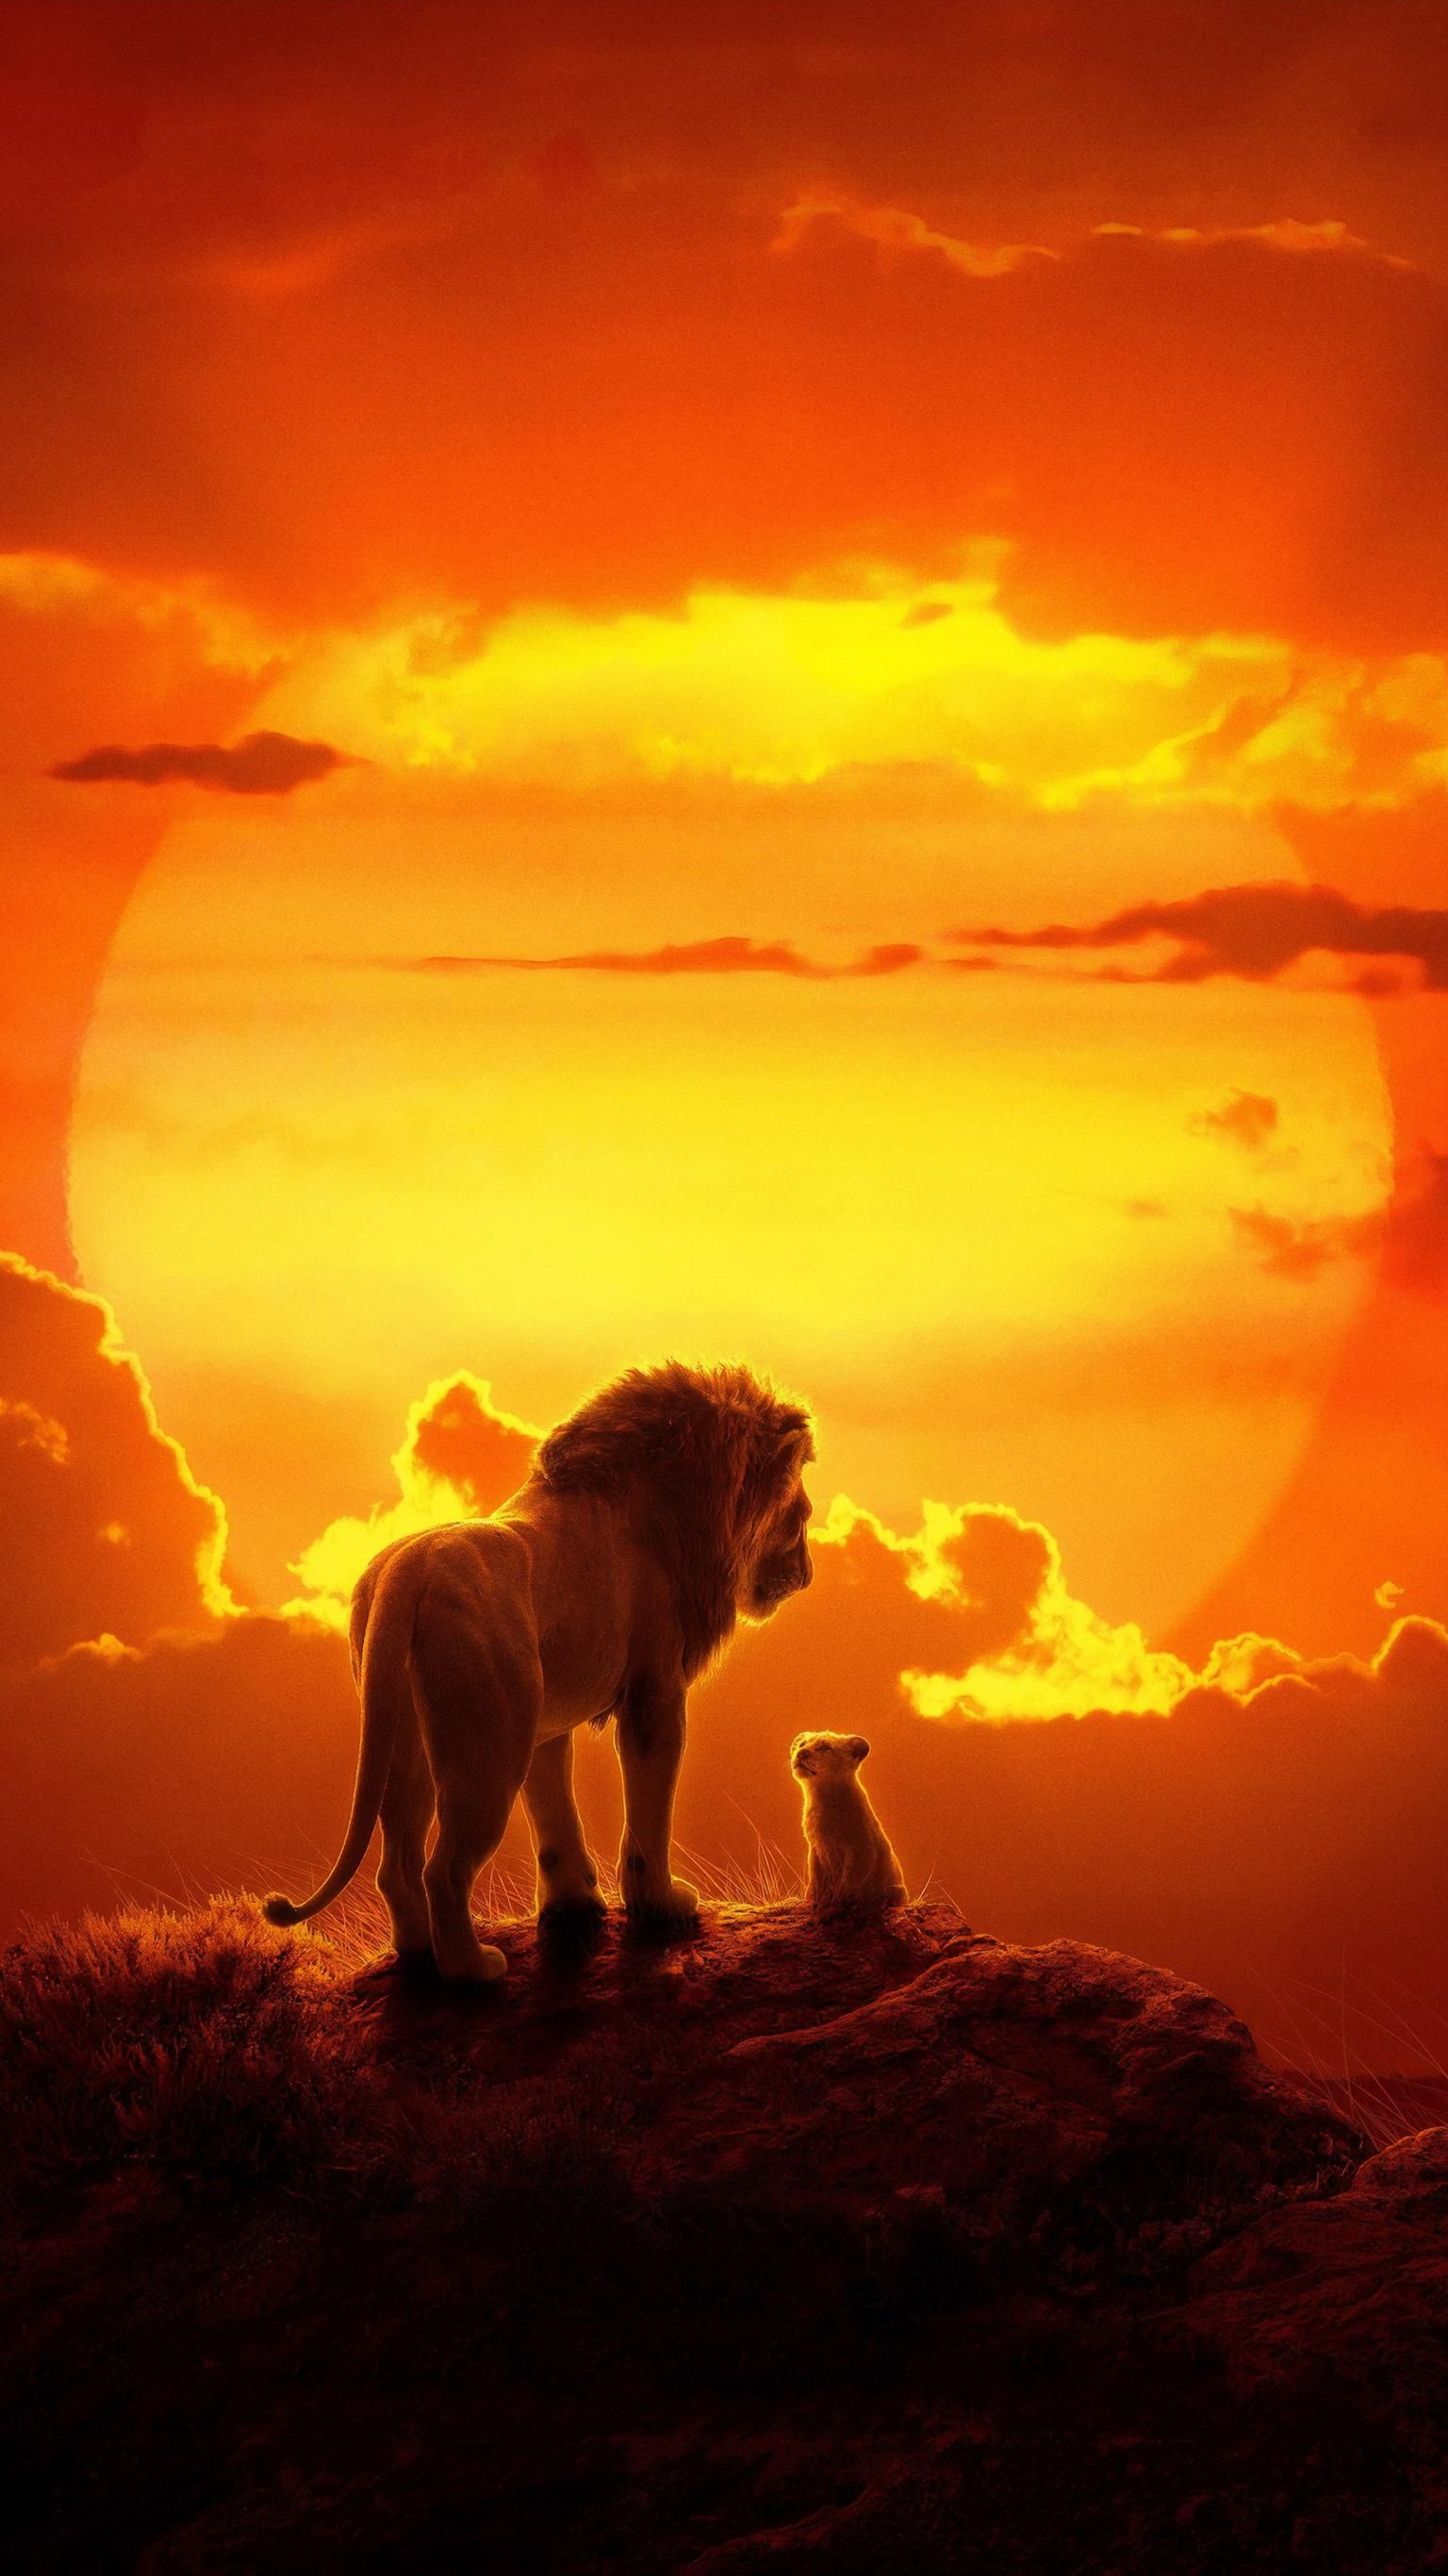 The Lion King (2019) Phone Wallpaper in 2020 Watch the